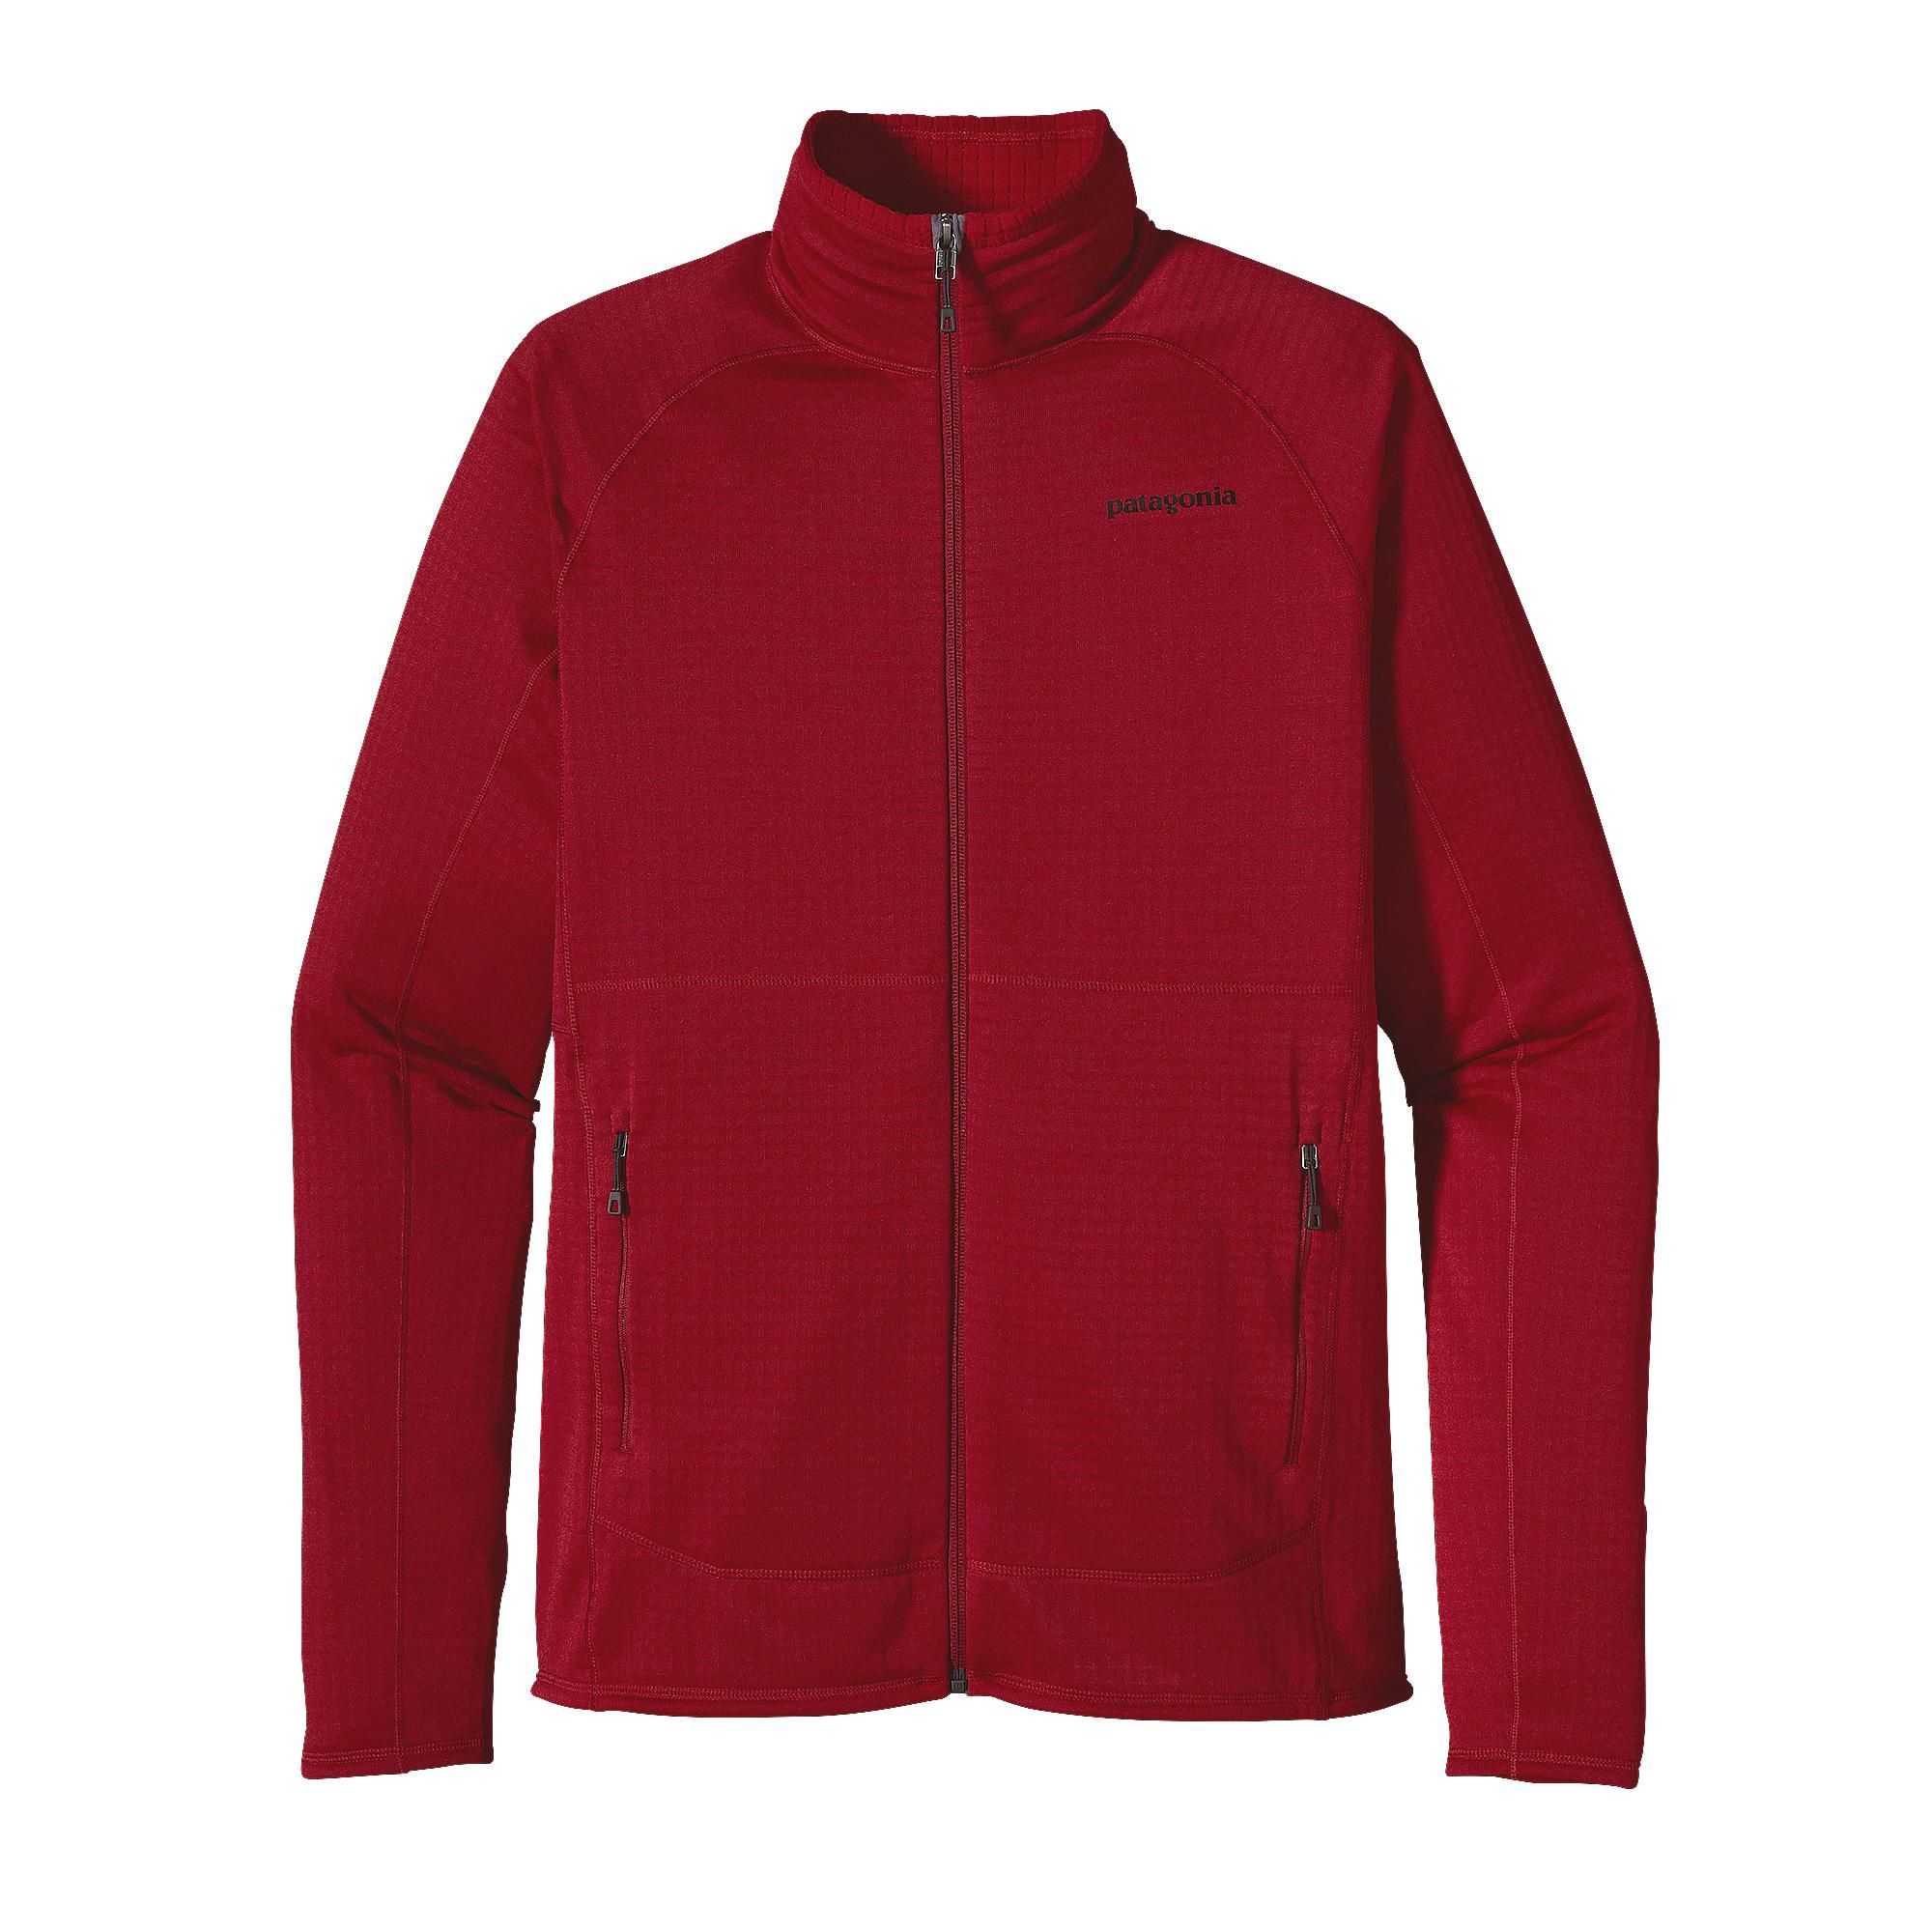 R1® fullzip midlayer for cycling (With images) Outdoor